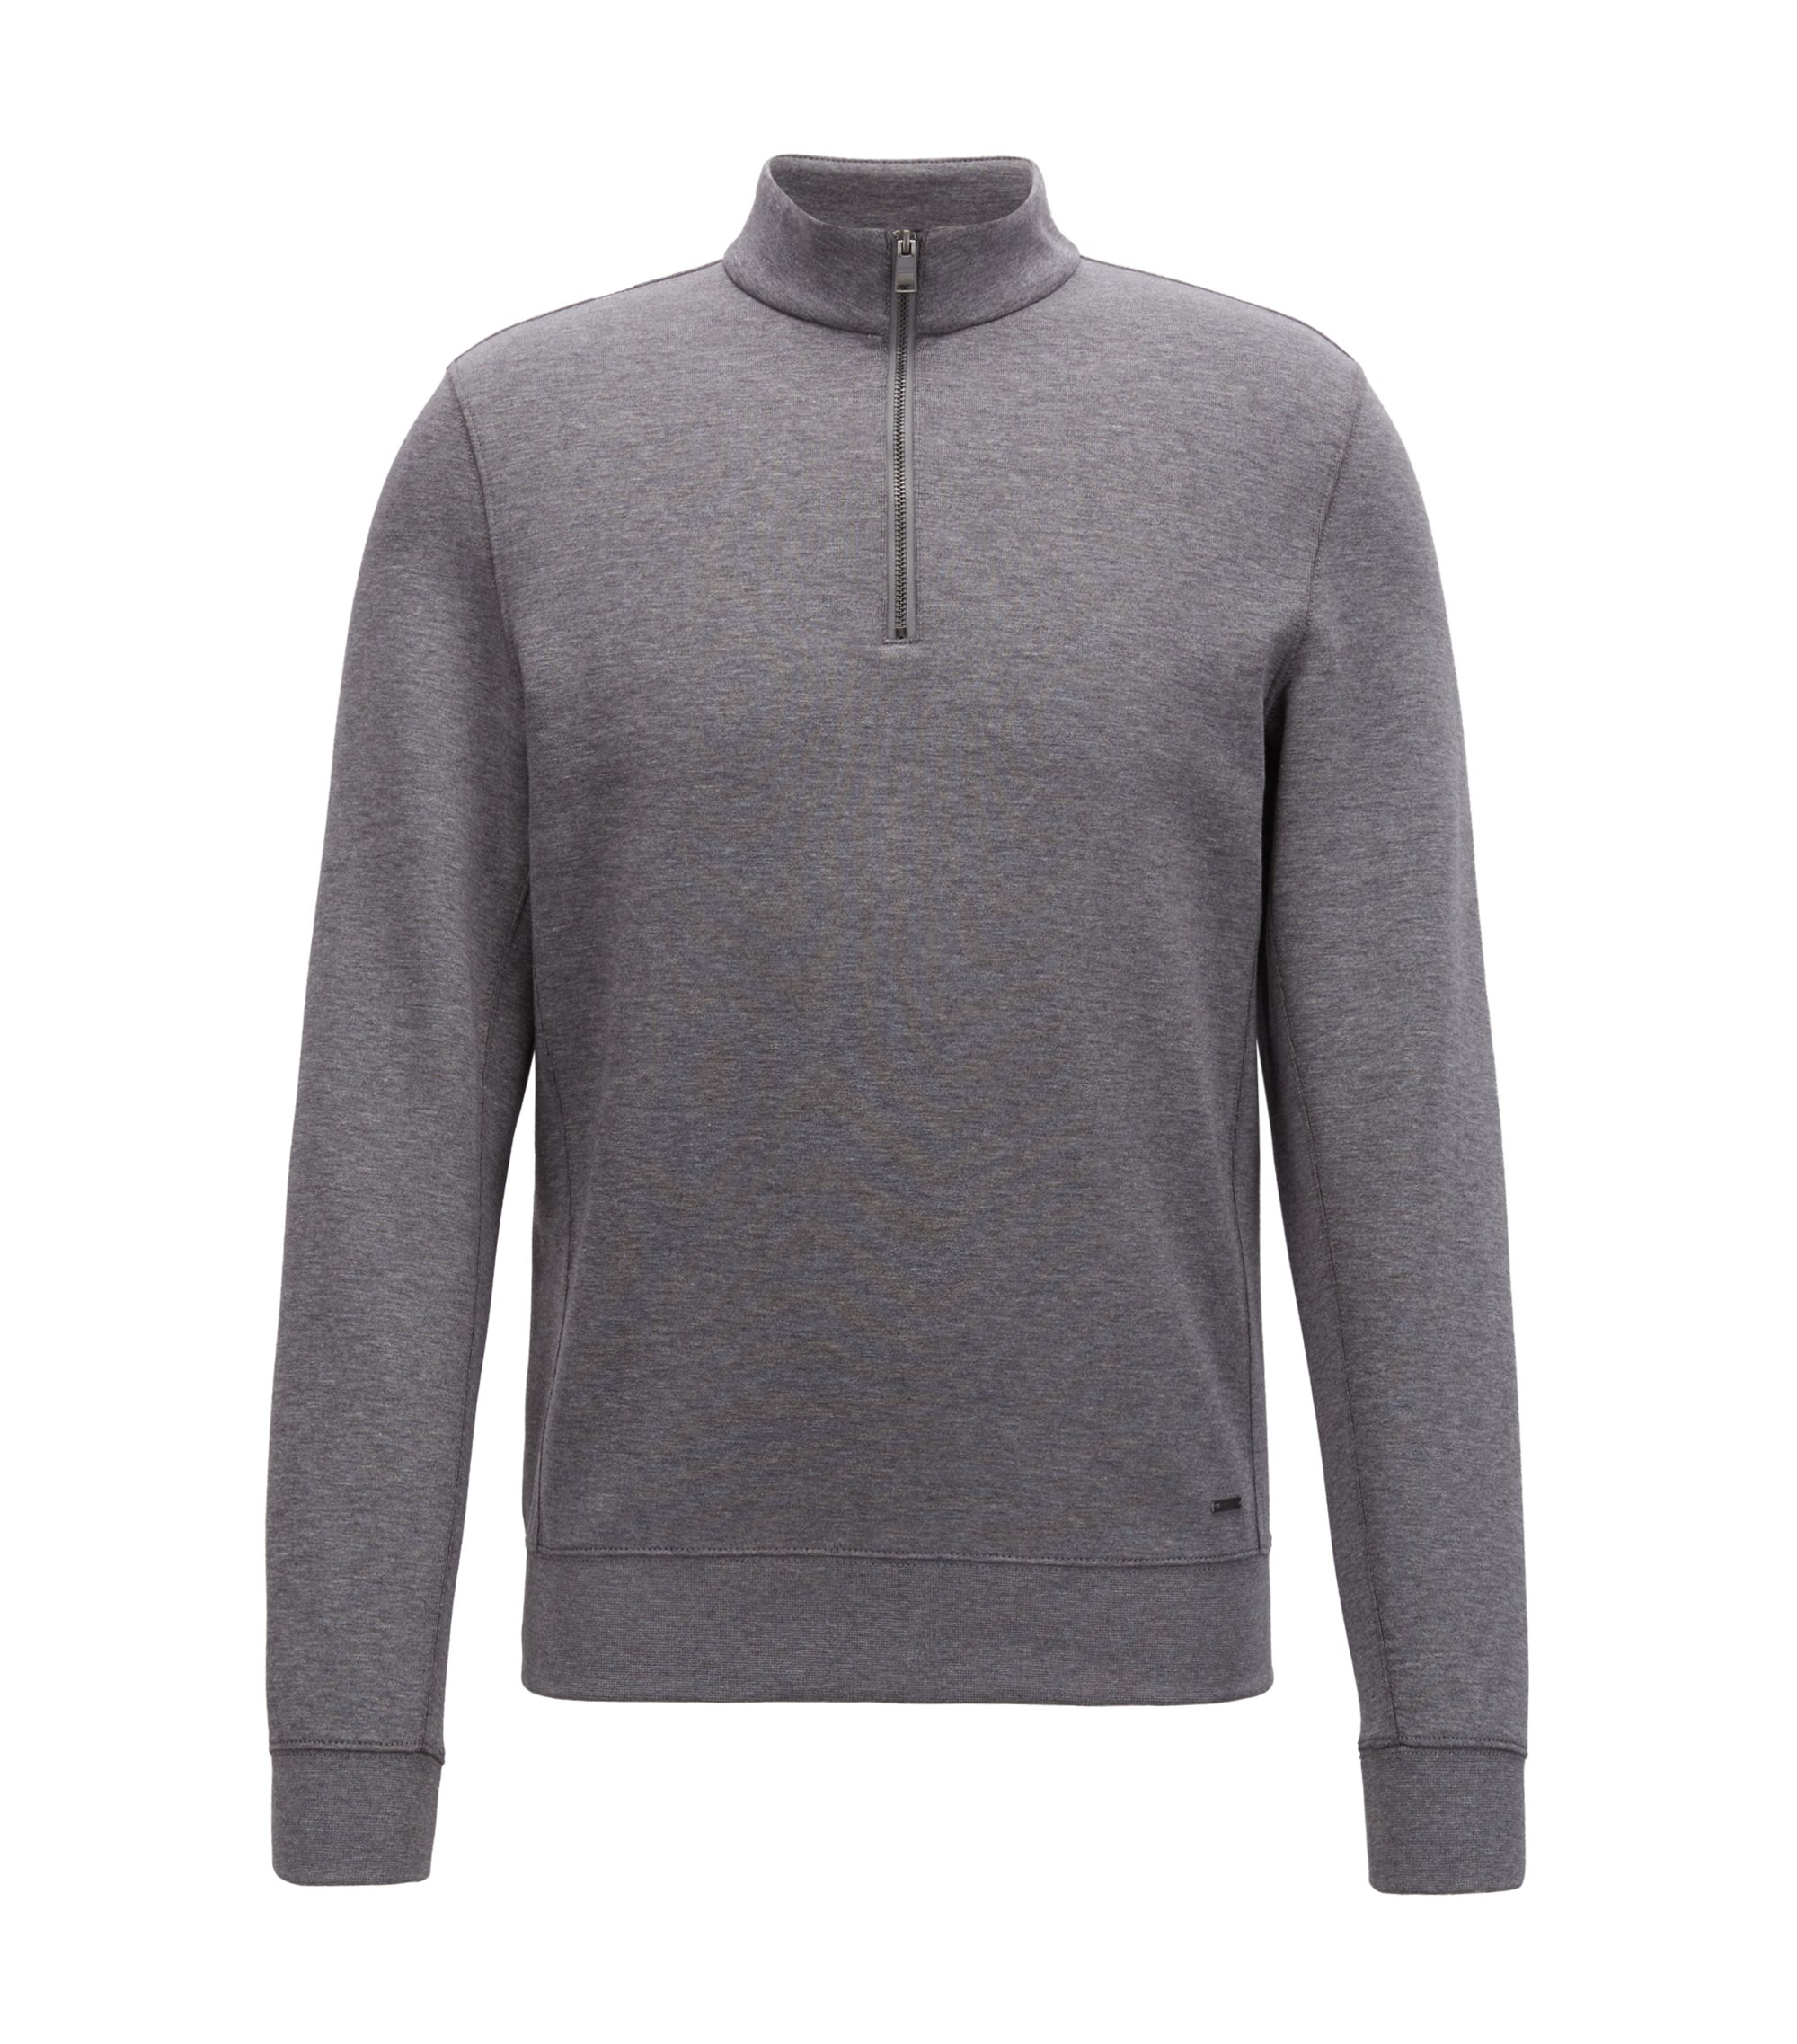 Slim-fit zip-neck sweatshirt in a cotton blend, Grey